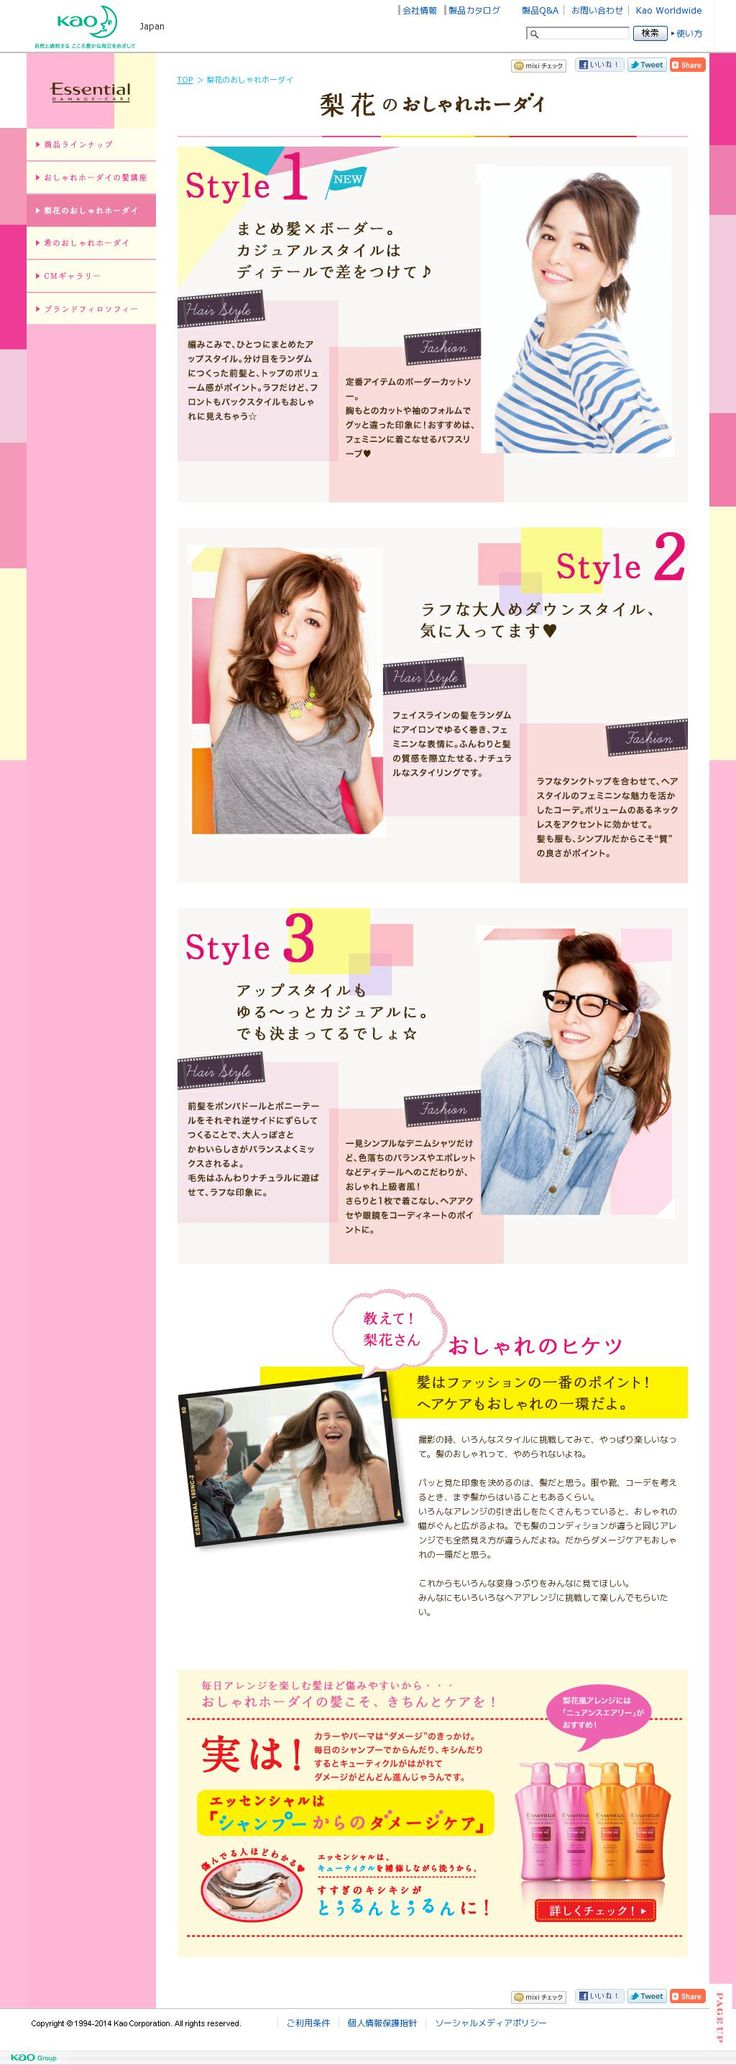 バナー The website 'http://www.kao.co.jp/essential/trend/rinka/' courtesy of @Pinstamatic (http://pinstamatic.com)